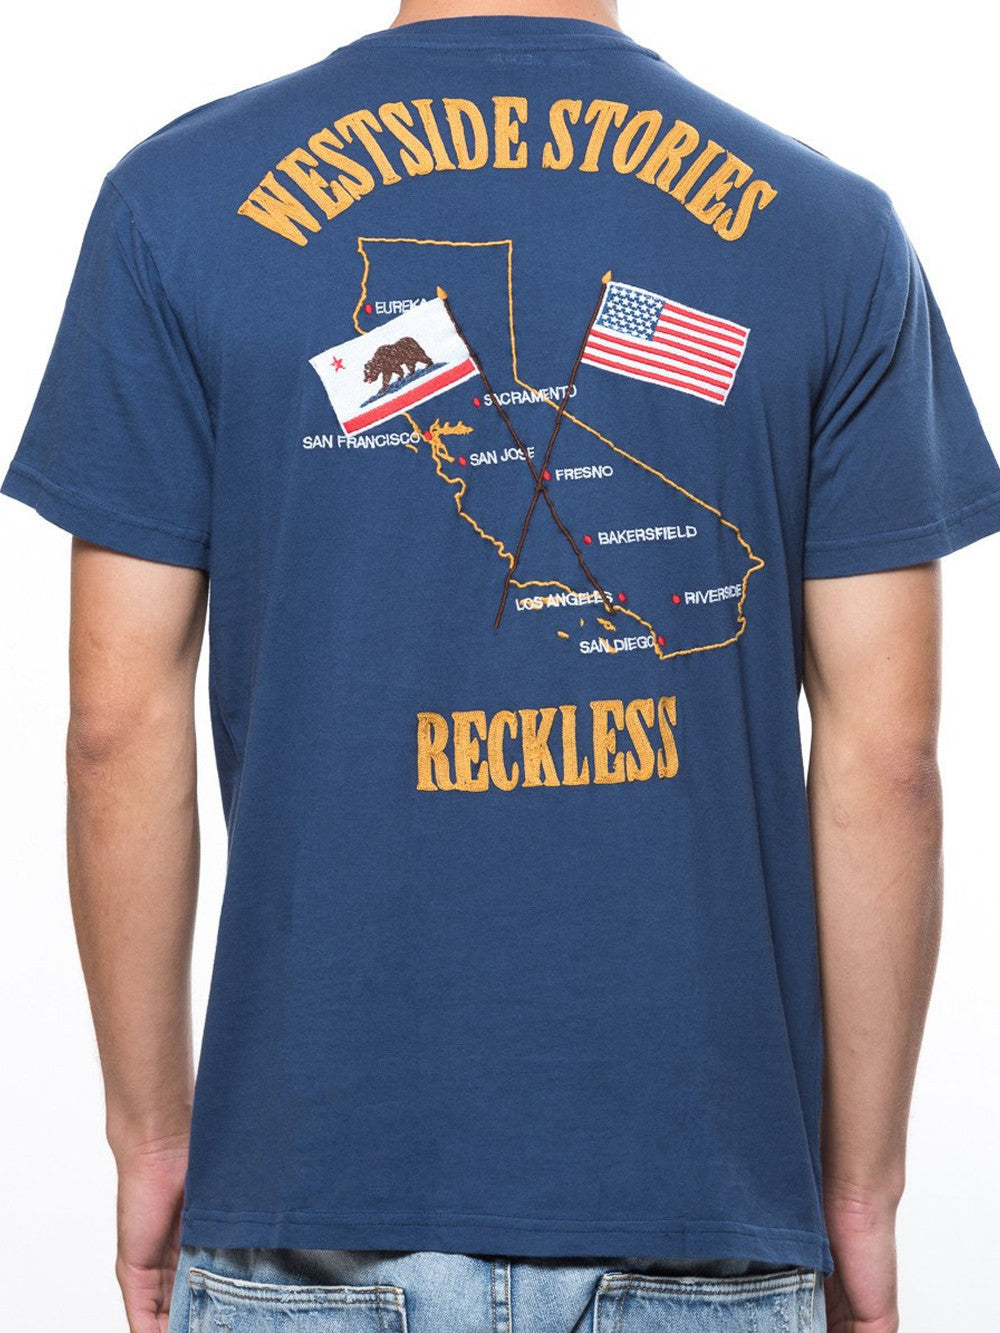 Young and Reckless Mens - Tees - Graphic Tee Westside Stories Tee - Blue